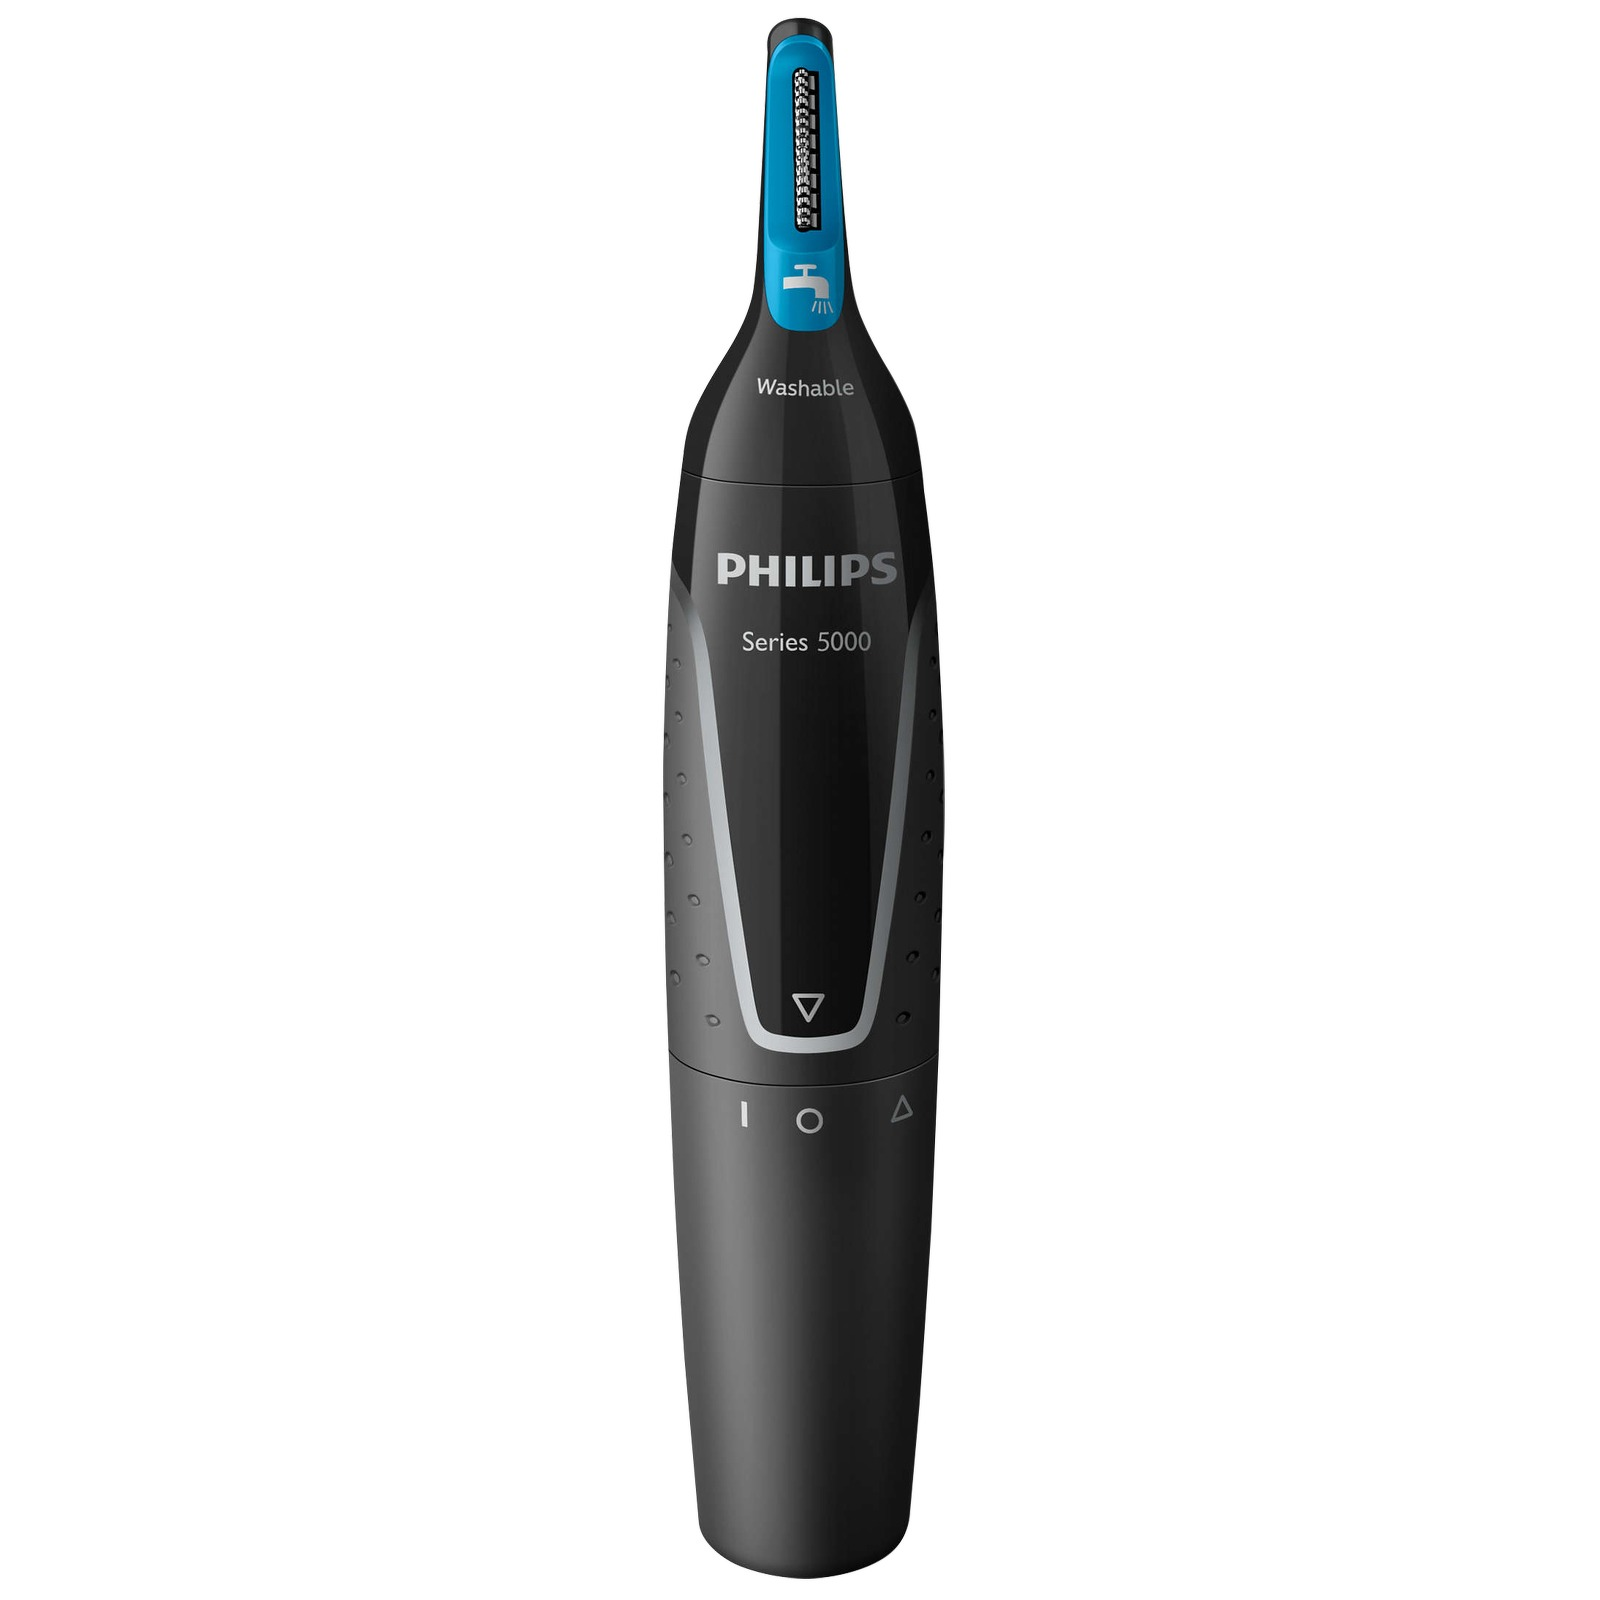 Philips Trimmers Nosetrimmer系列5000温和的鼻子、颈部和侧边修剪器NT5171/15